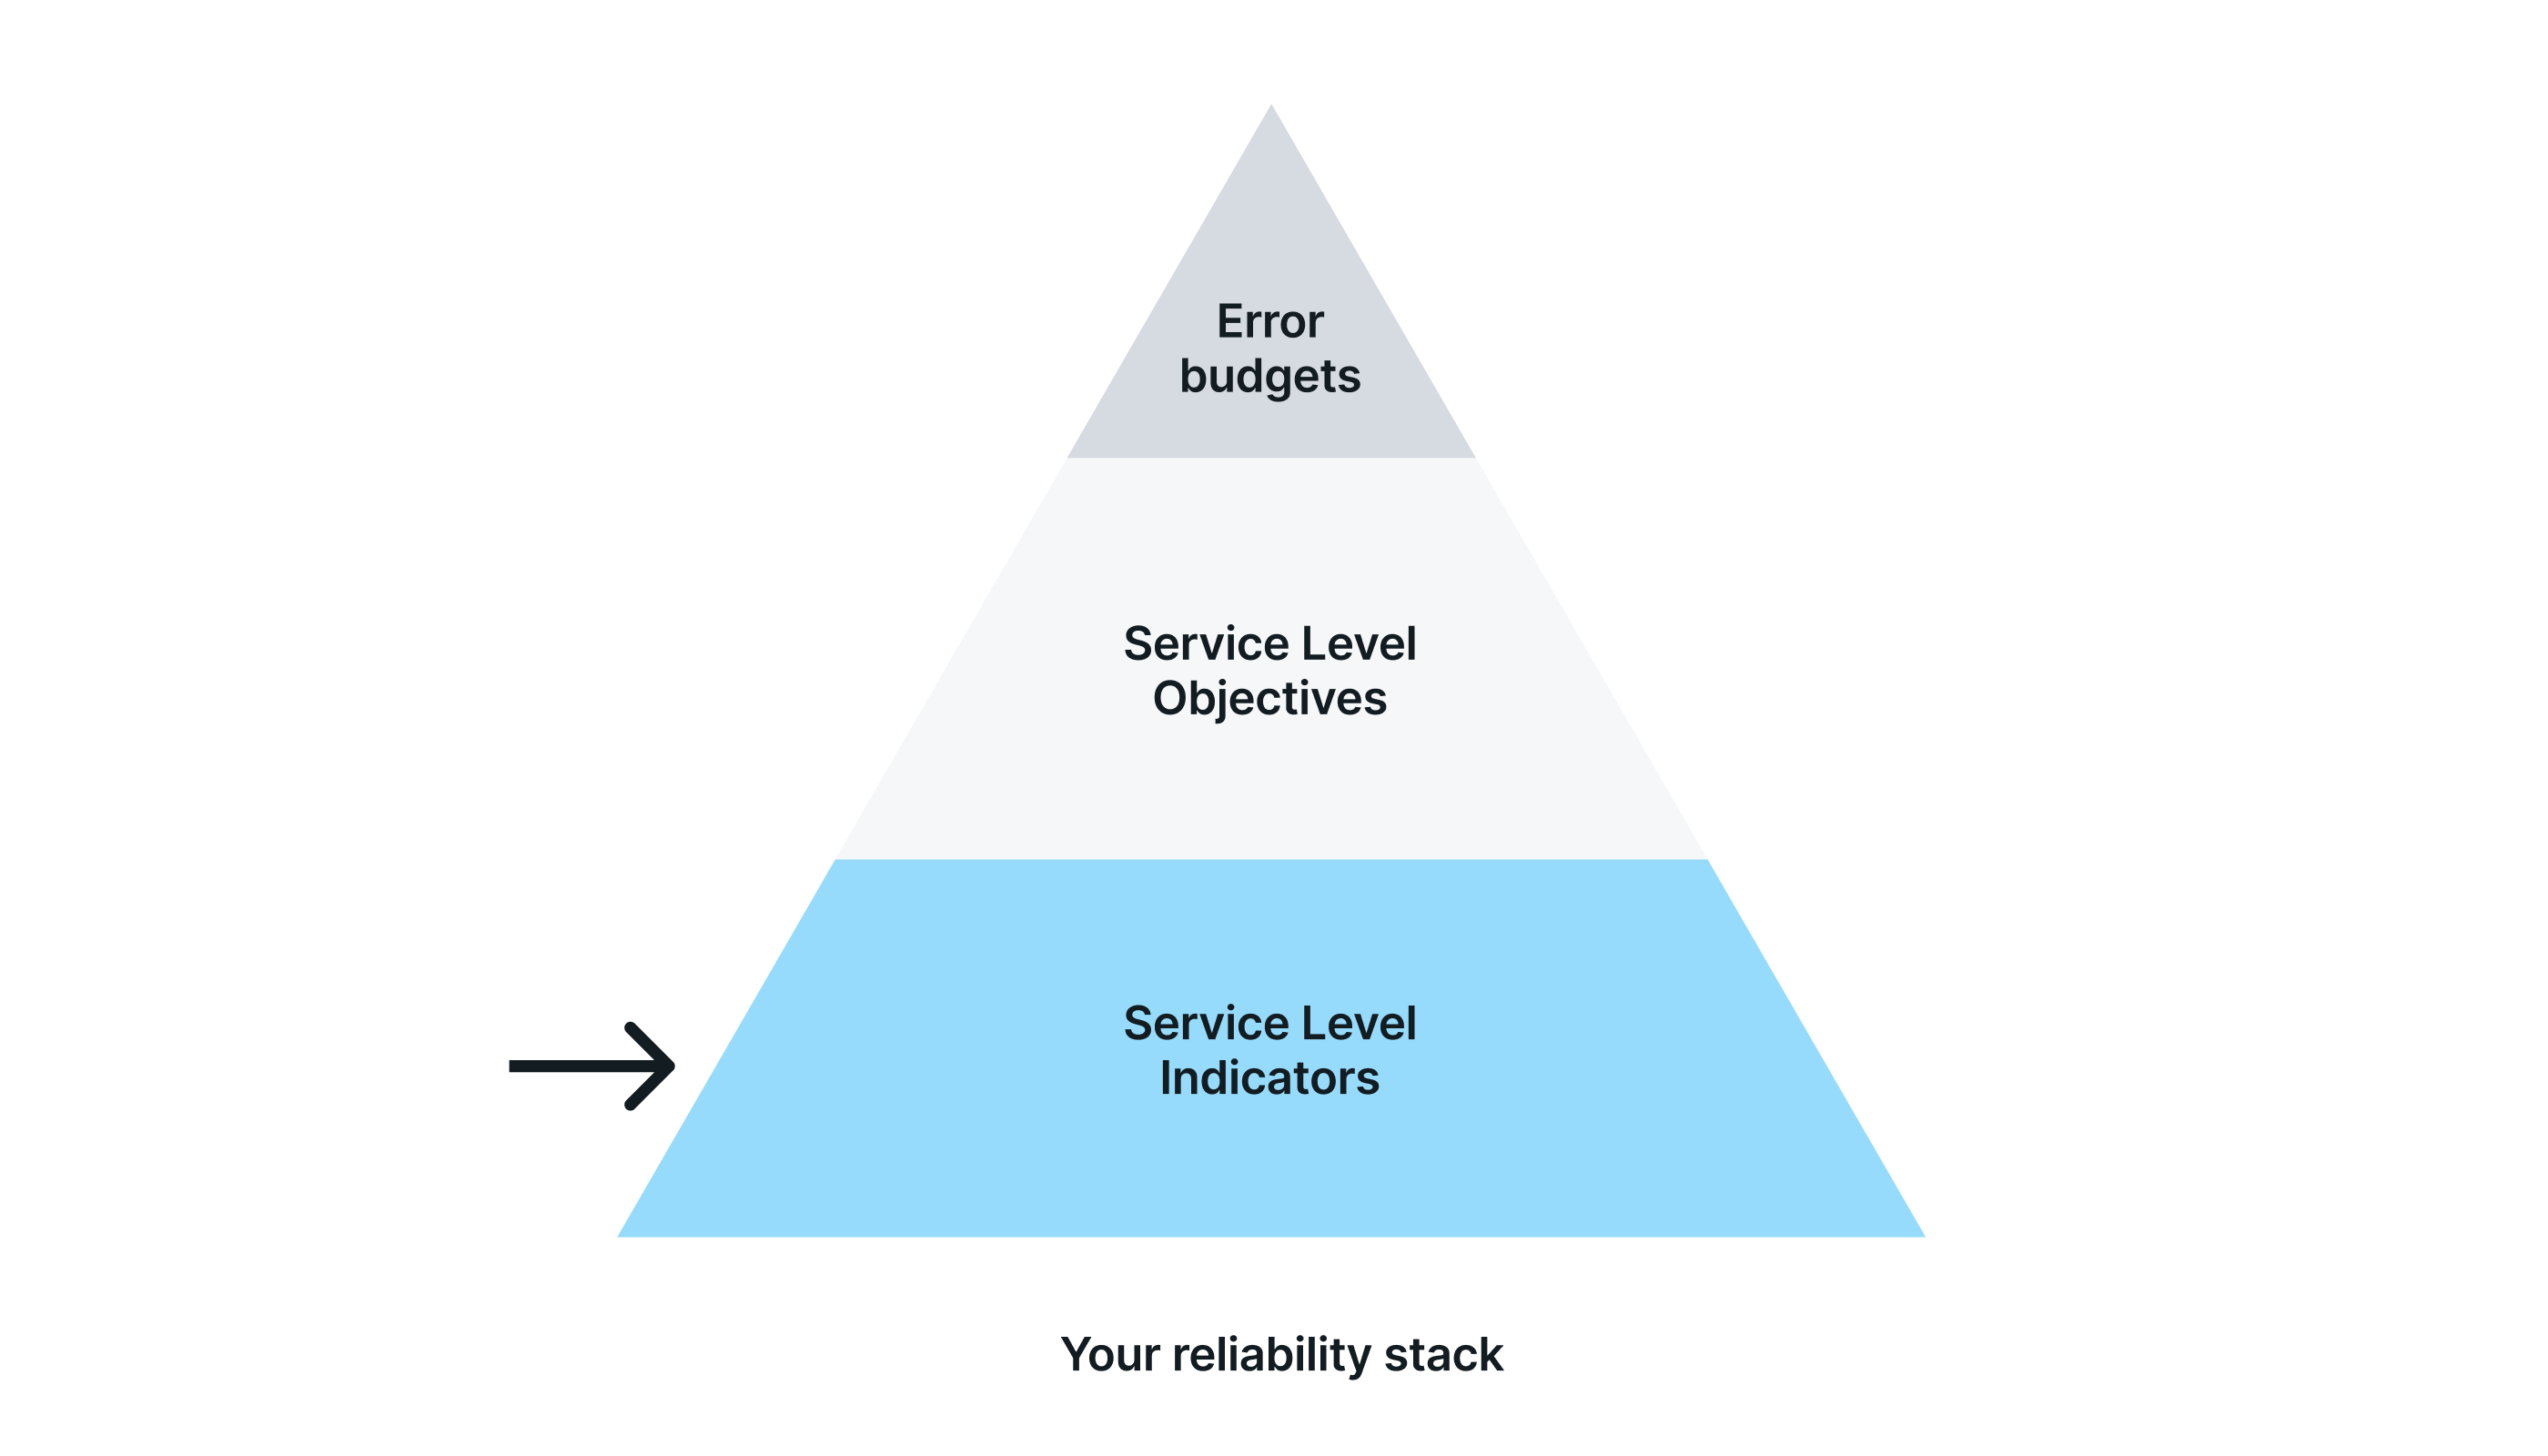 Service Level Indicators (SLIs) in reliability stack